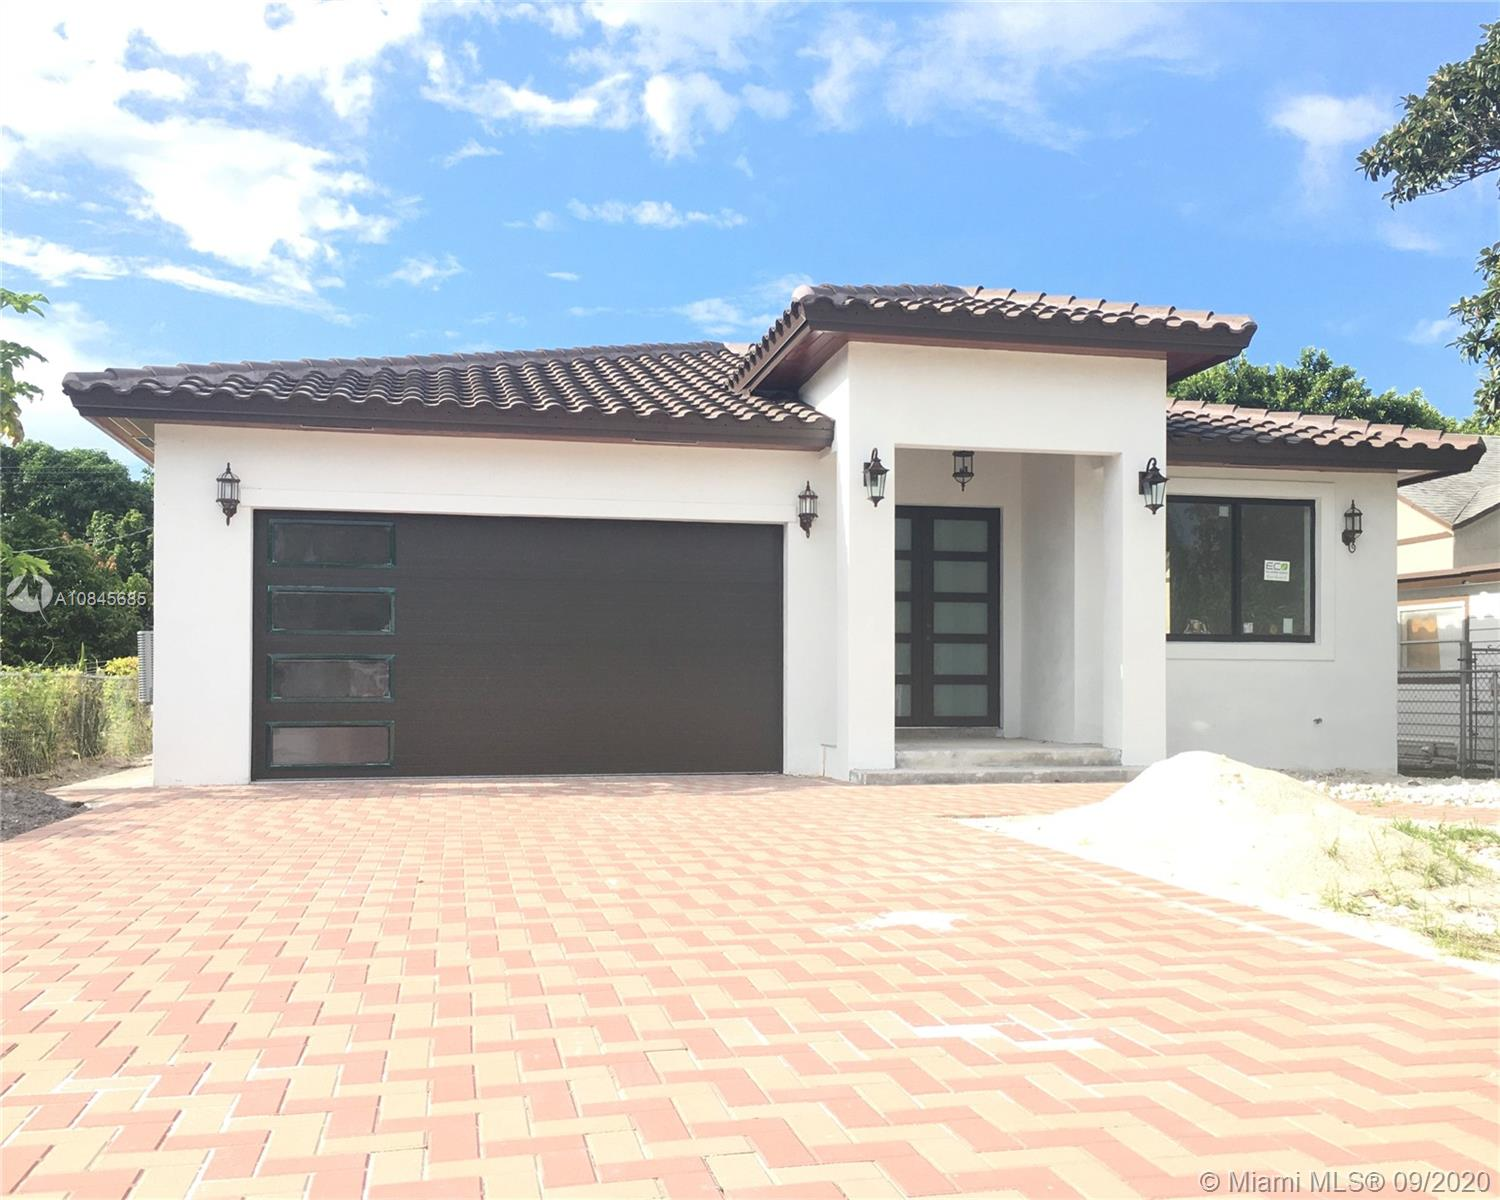 2535  Madison St  For Sale A10845685, FL